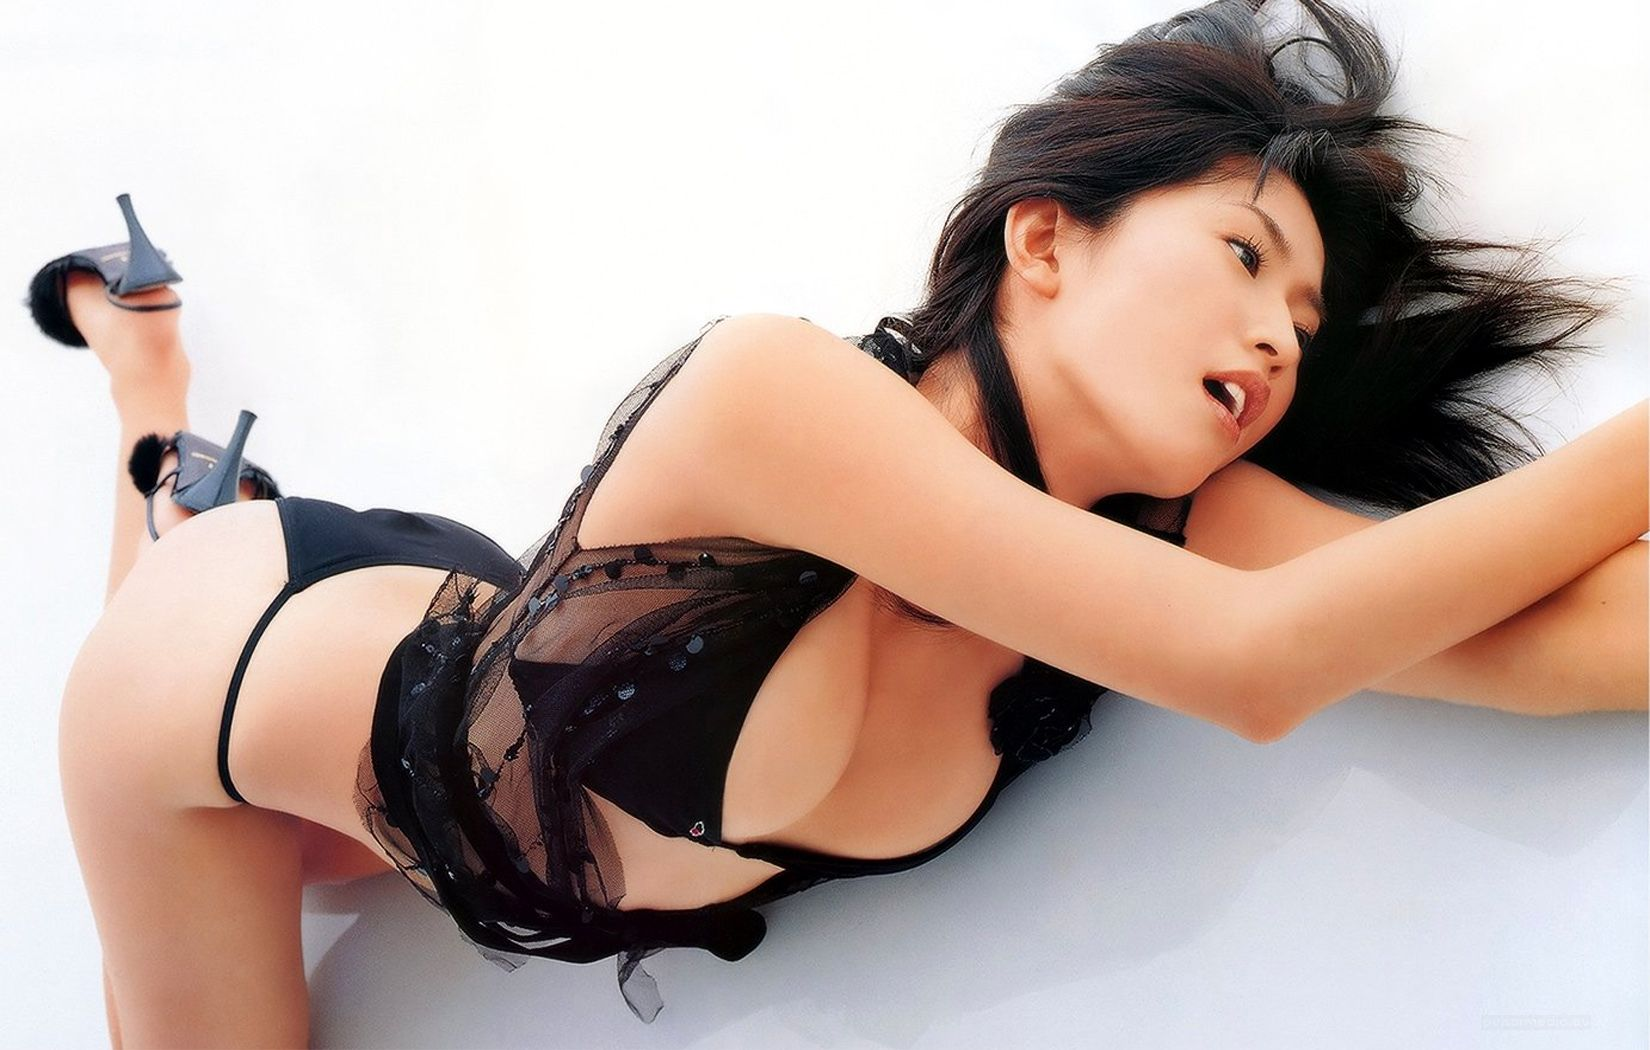 Hot asian sexy japanese strong cocks....harmonious